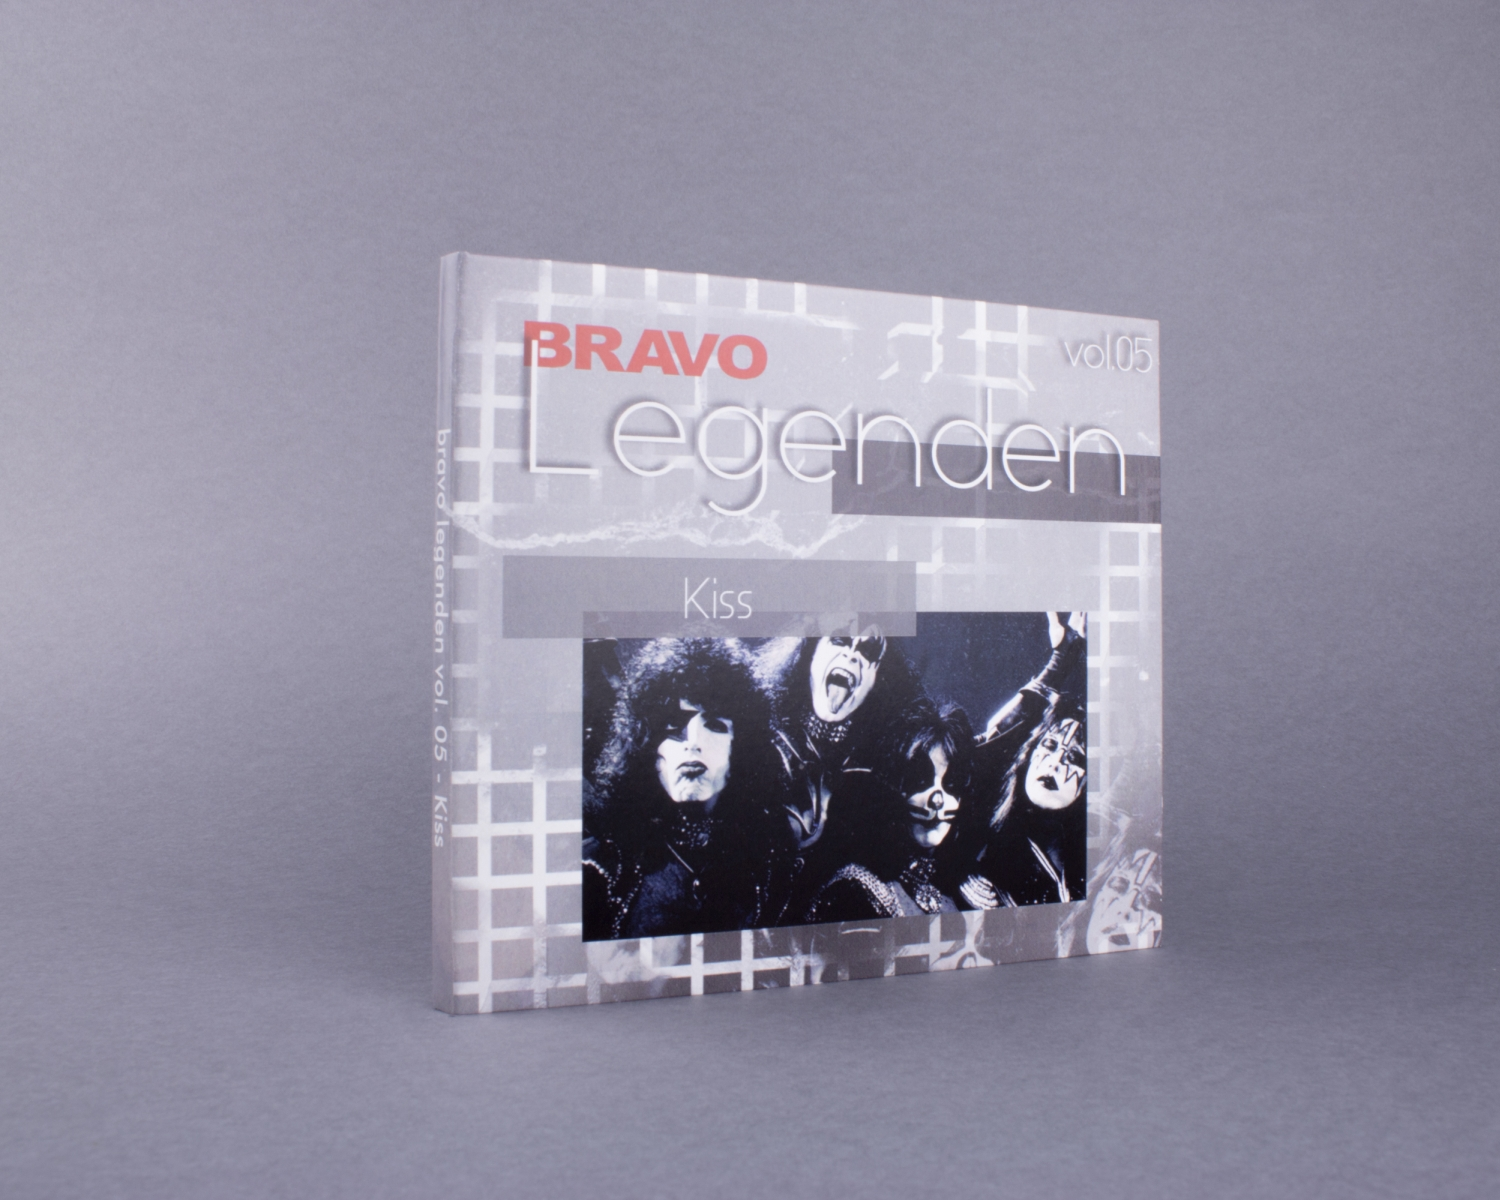 BRAVO Legenden Vol. 05 – KISS